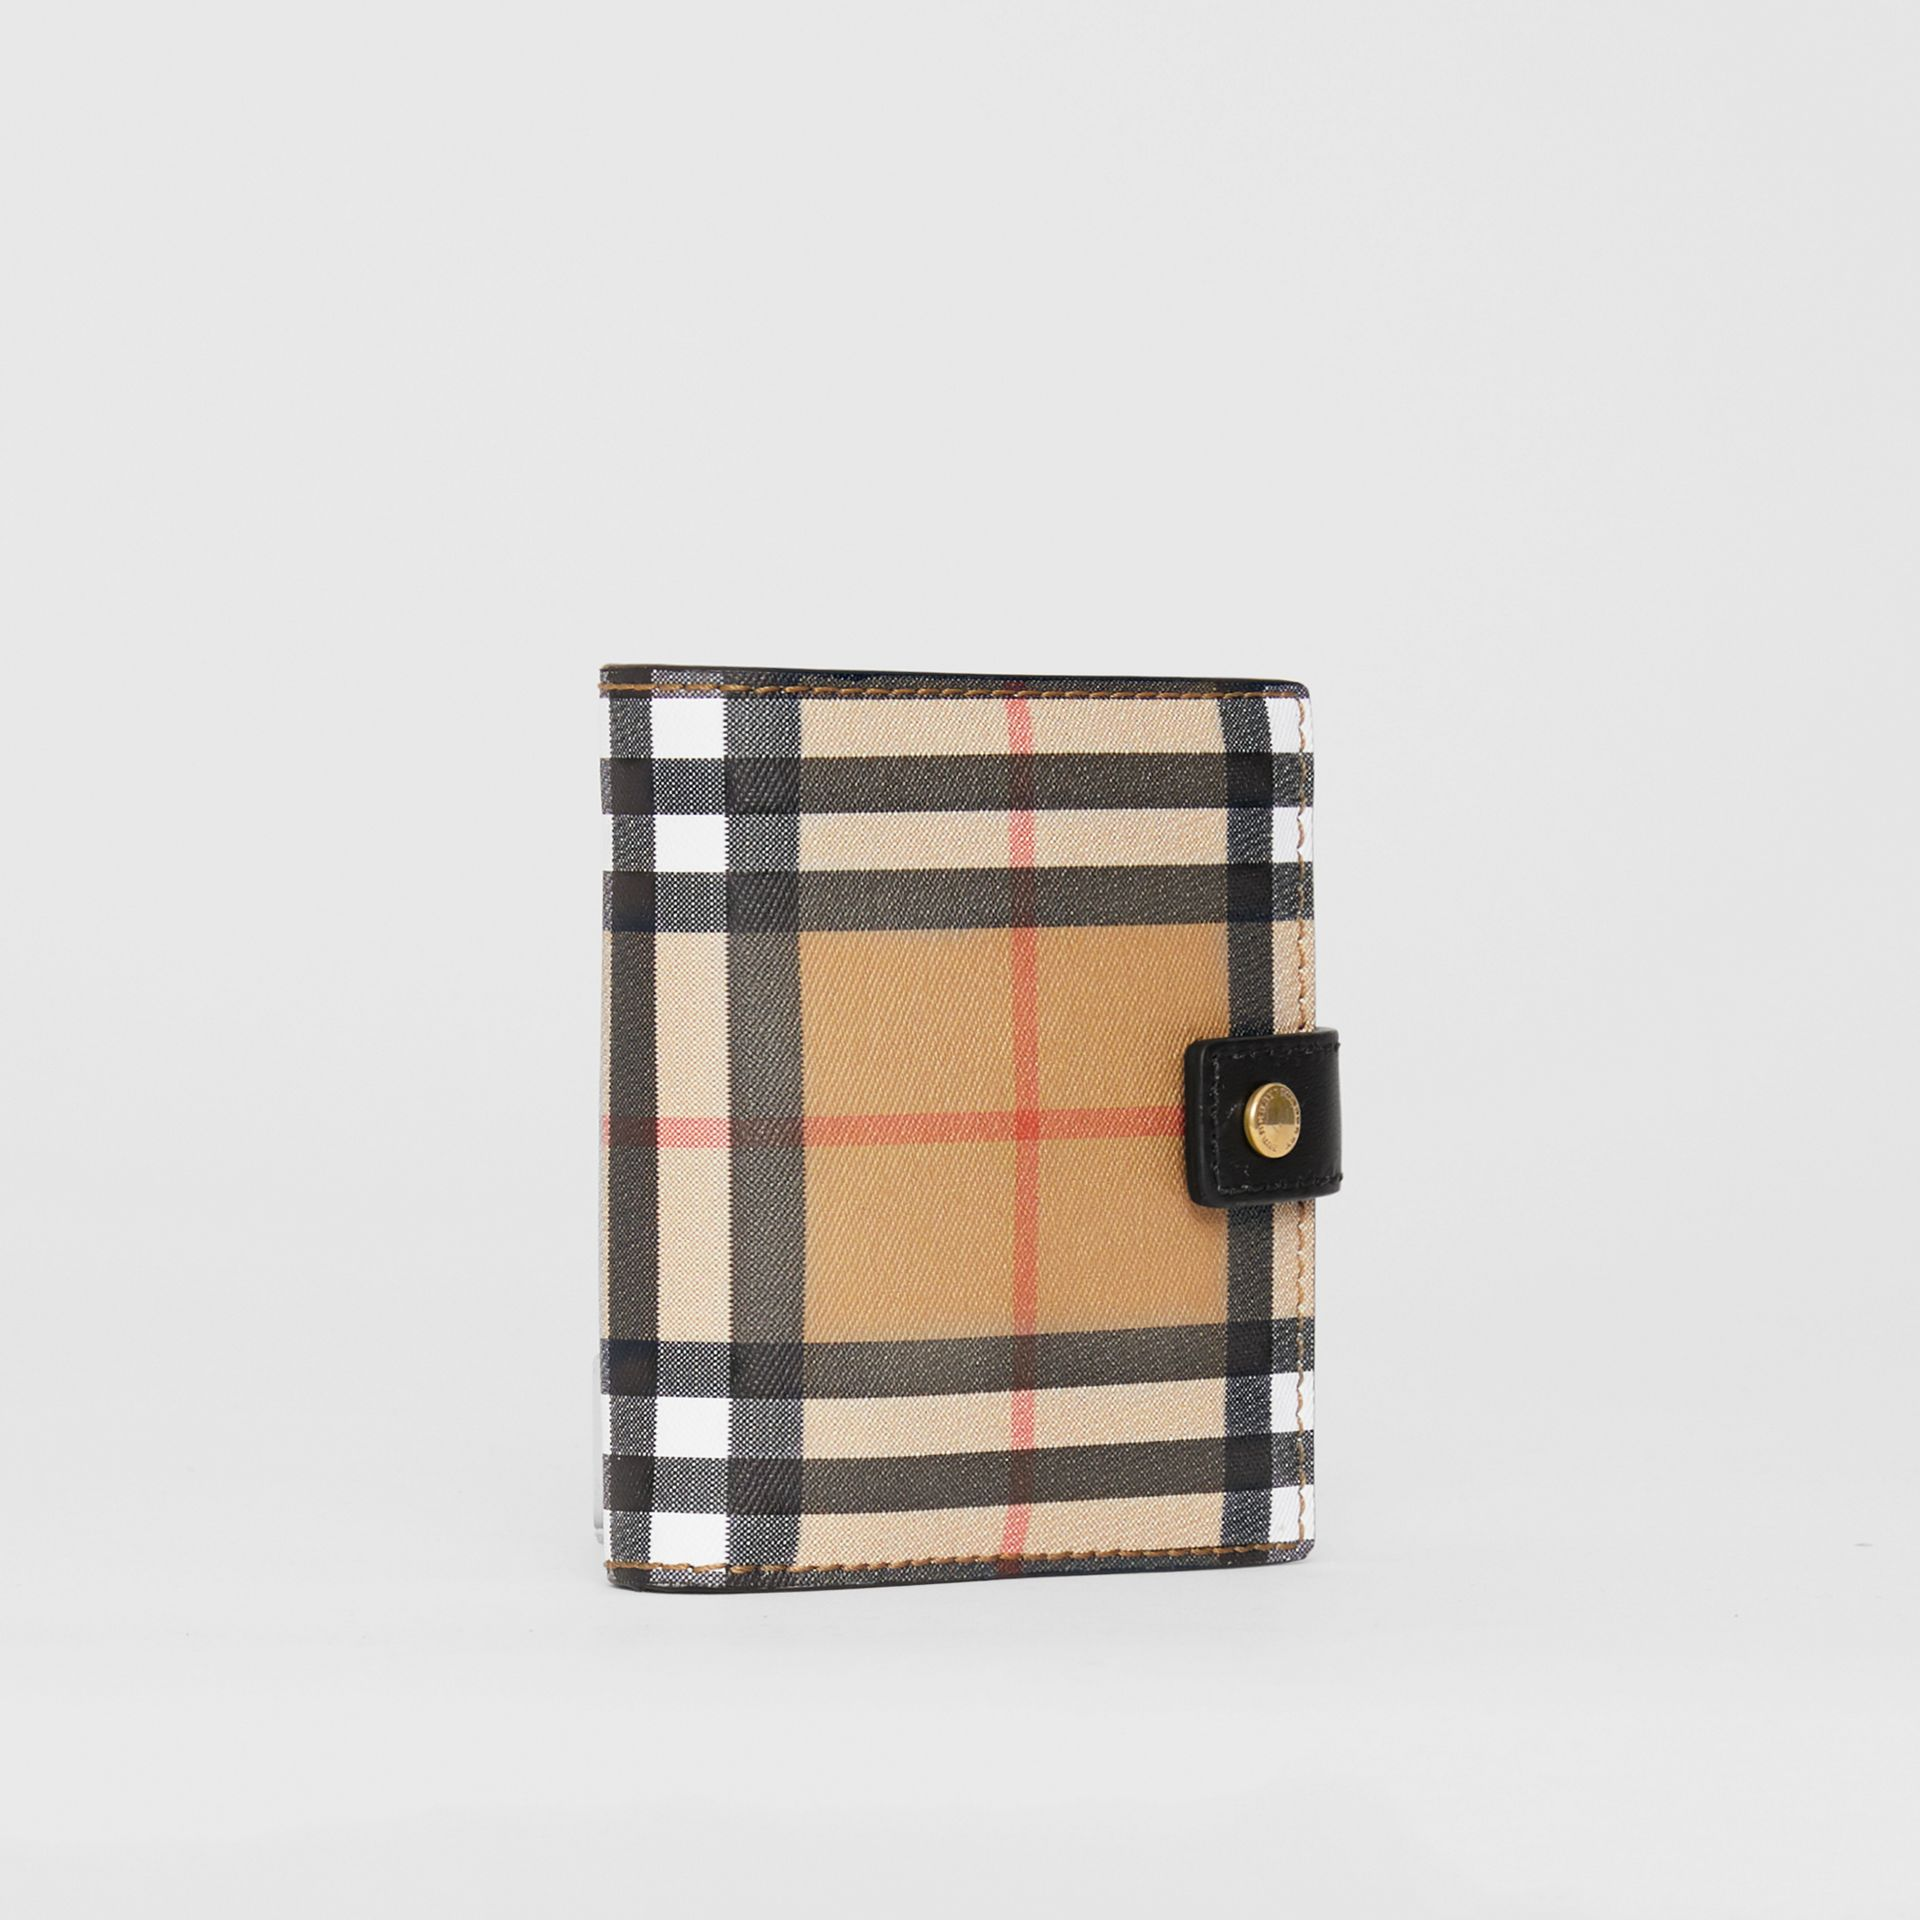 Small Vintage Check and Leather Folding Wallet in Black - Women | Burberry - gallery image 4